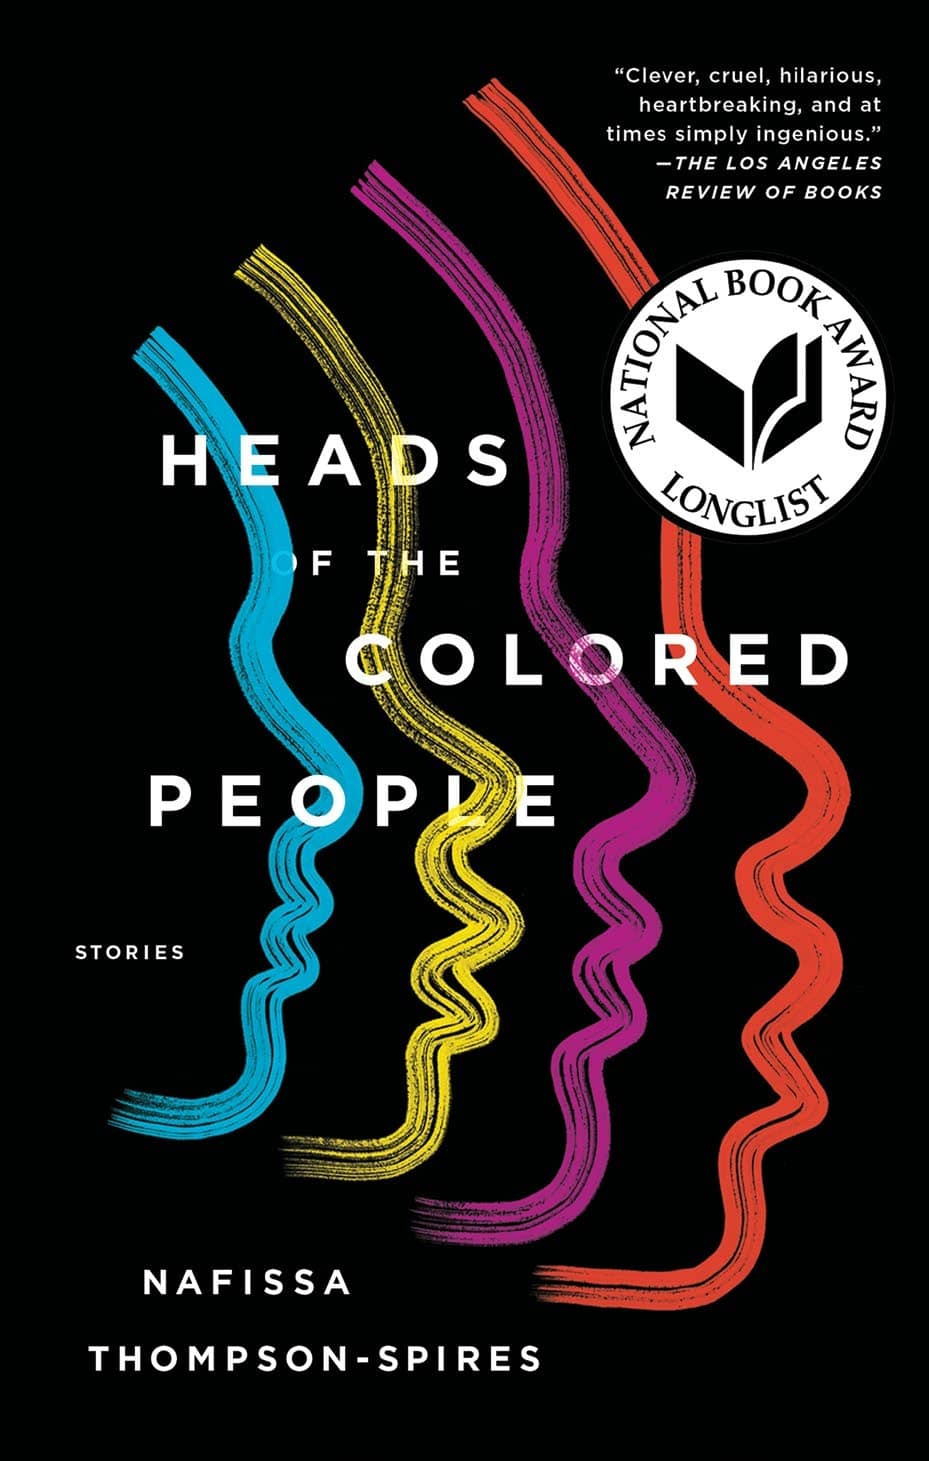 HEADS OF THE COLORED PEOPLE - NAFISSA THOMPSON-SPIRES